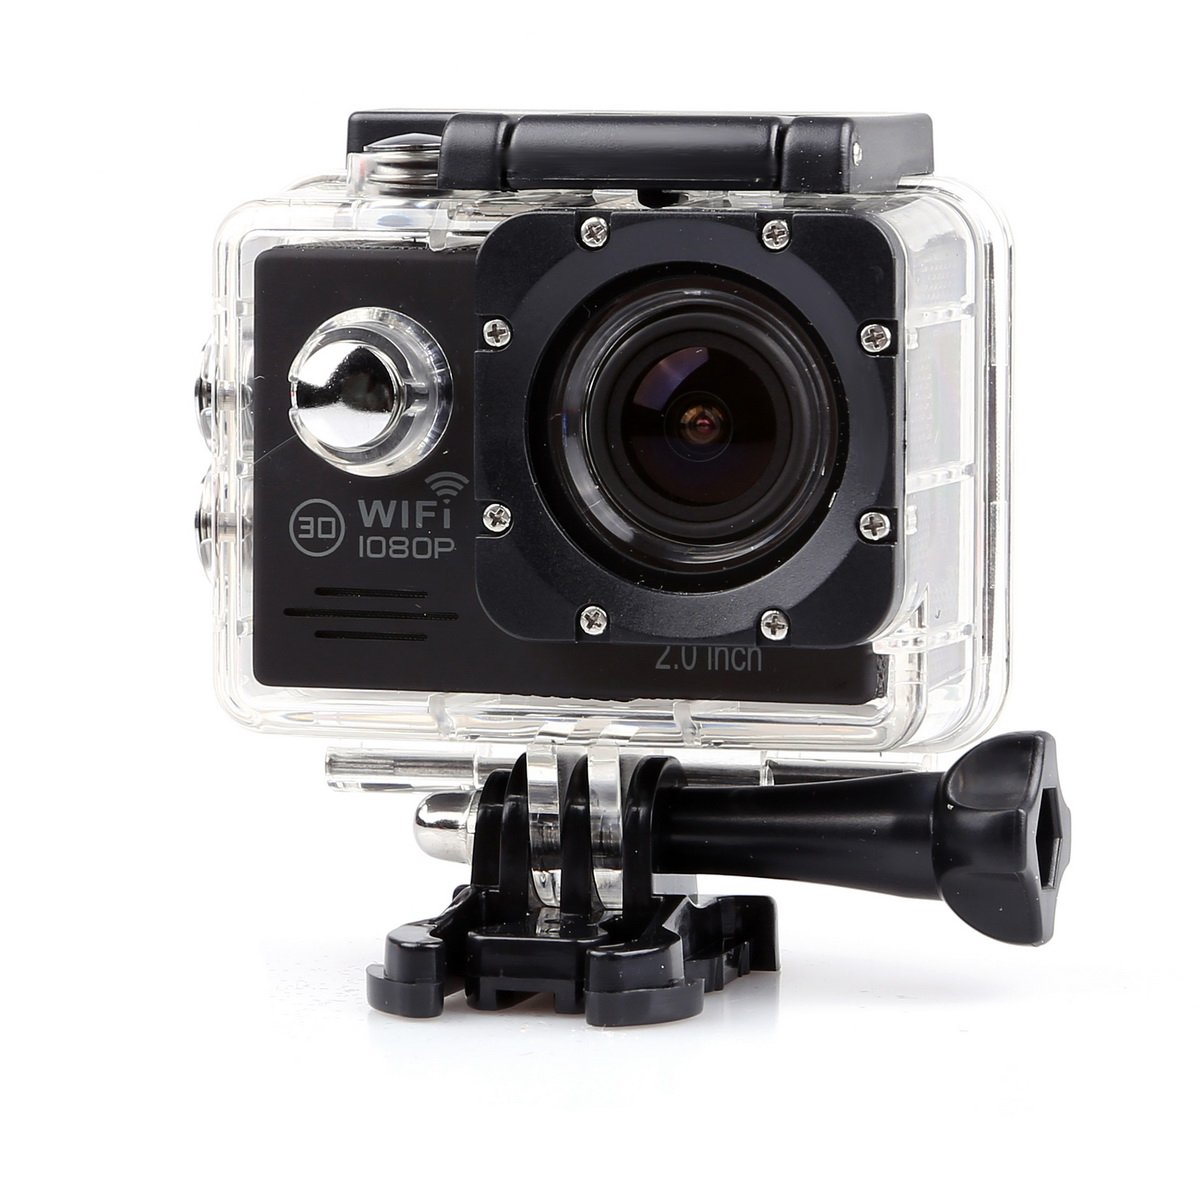 "Lightdow LD6000 1080P HD Wifi Sports Action Camera Kit - 2.0"" LCD + 170° Wide Angle Lens + NT96655 (Black+WiFi)"